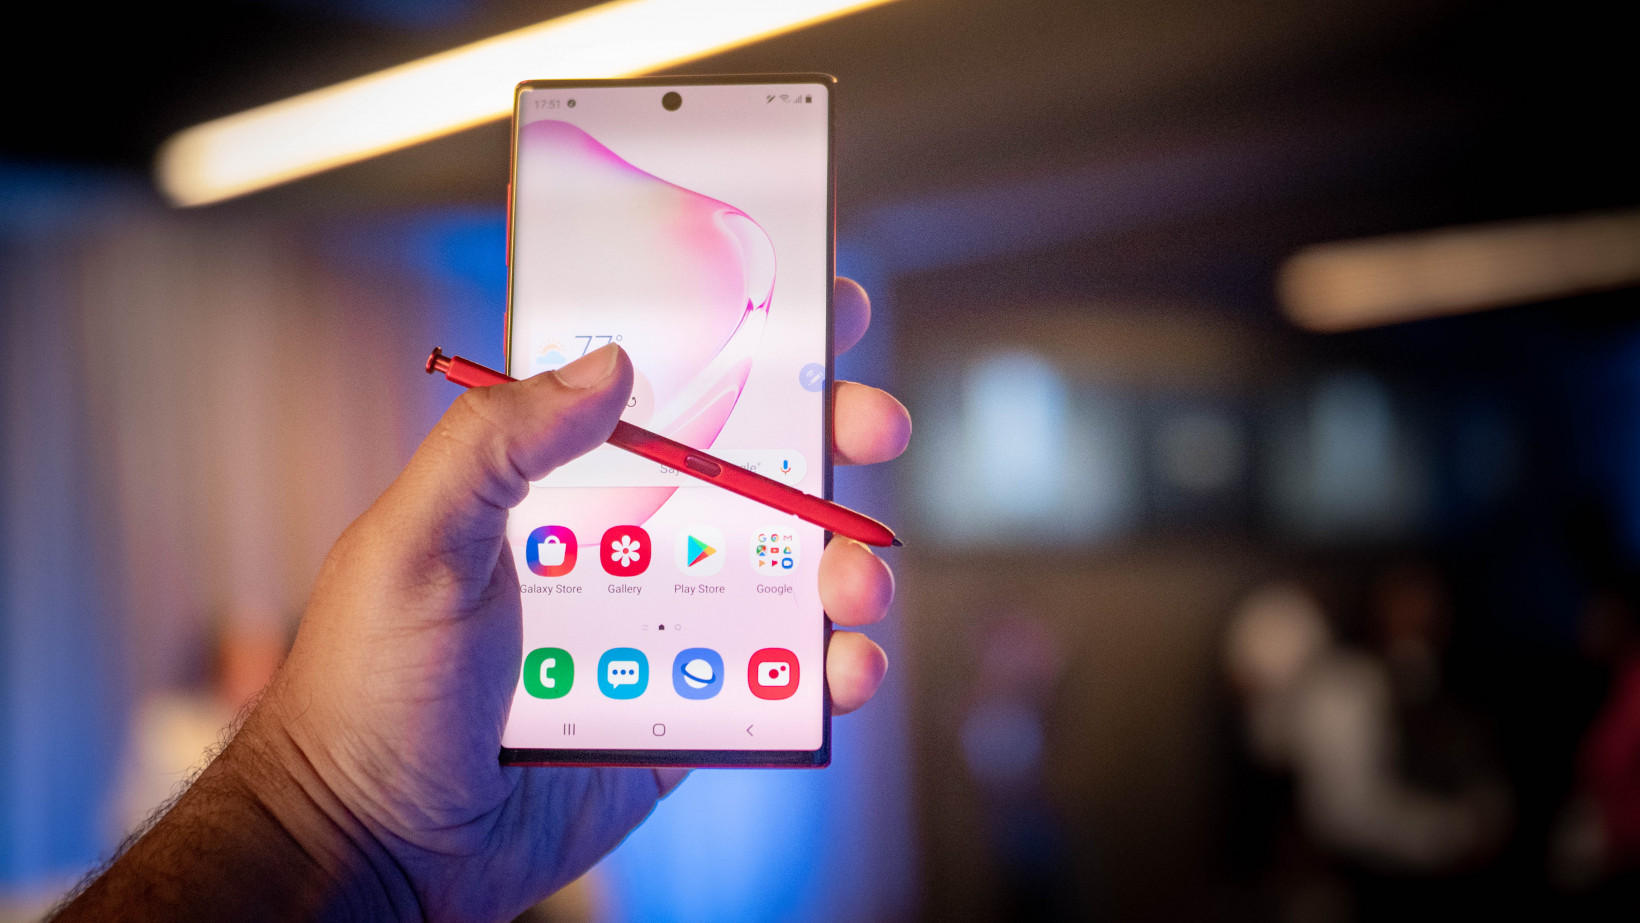 Samsung Note 10 is the Best Phone for Trading in 2019 Due to it's large screen and battery life